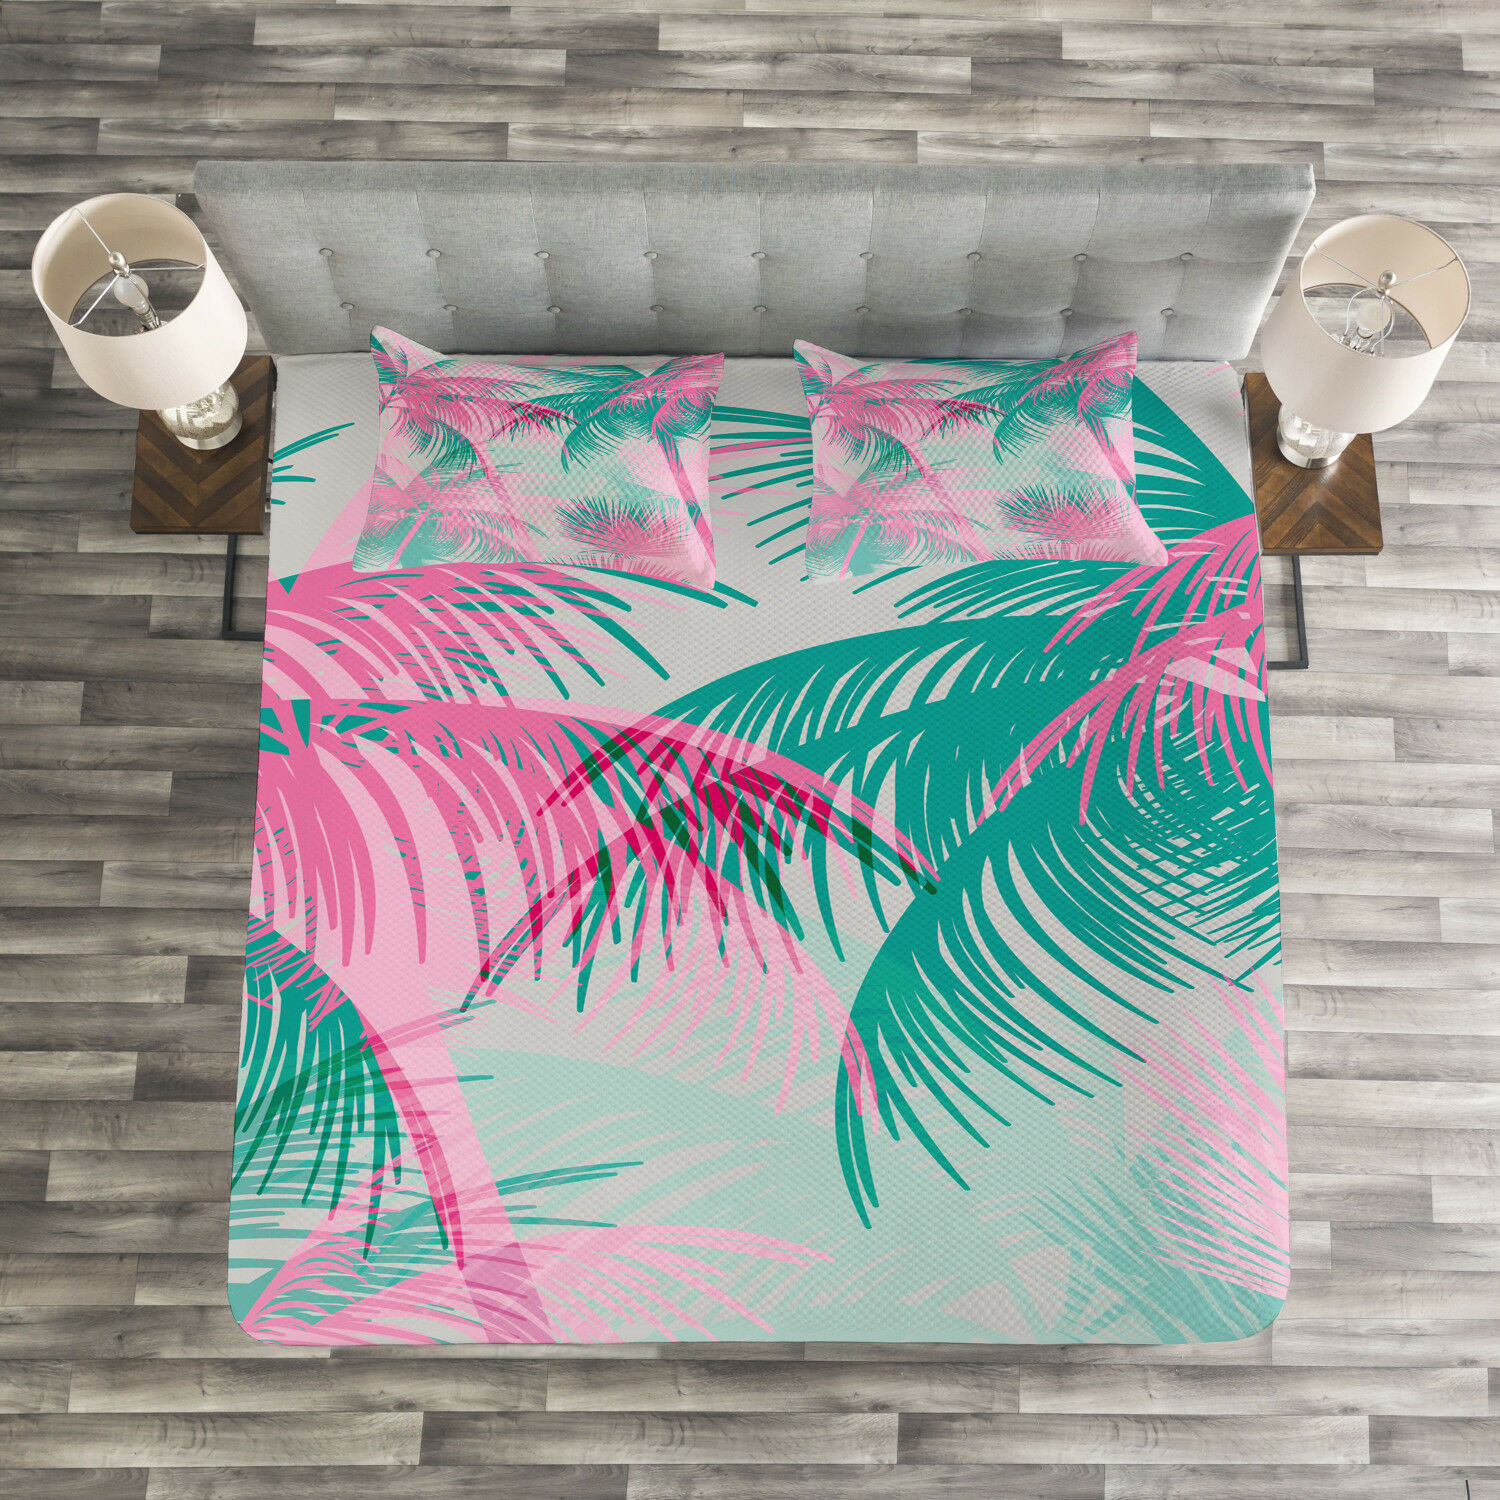 Palm Leaf Quilted Bedspread & Pillow Shams Set, Beach Party Vintage Print